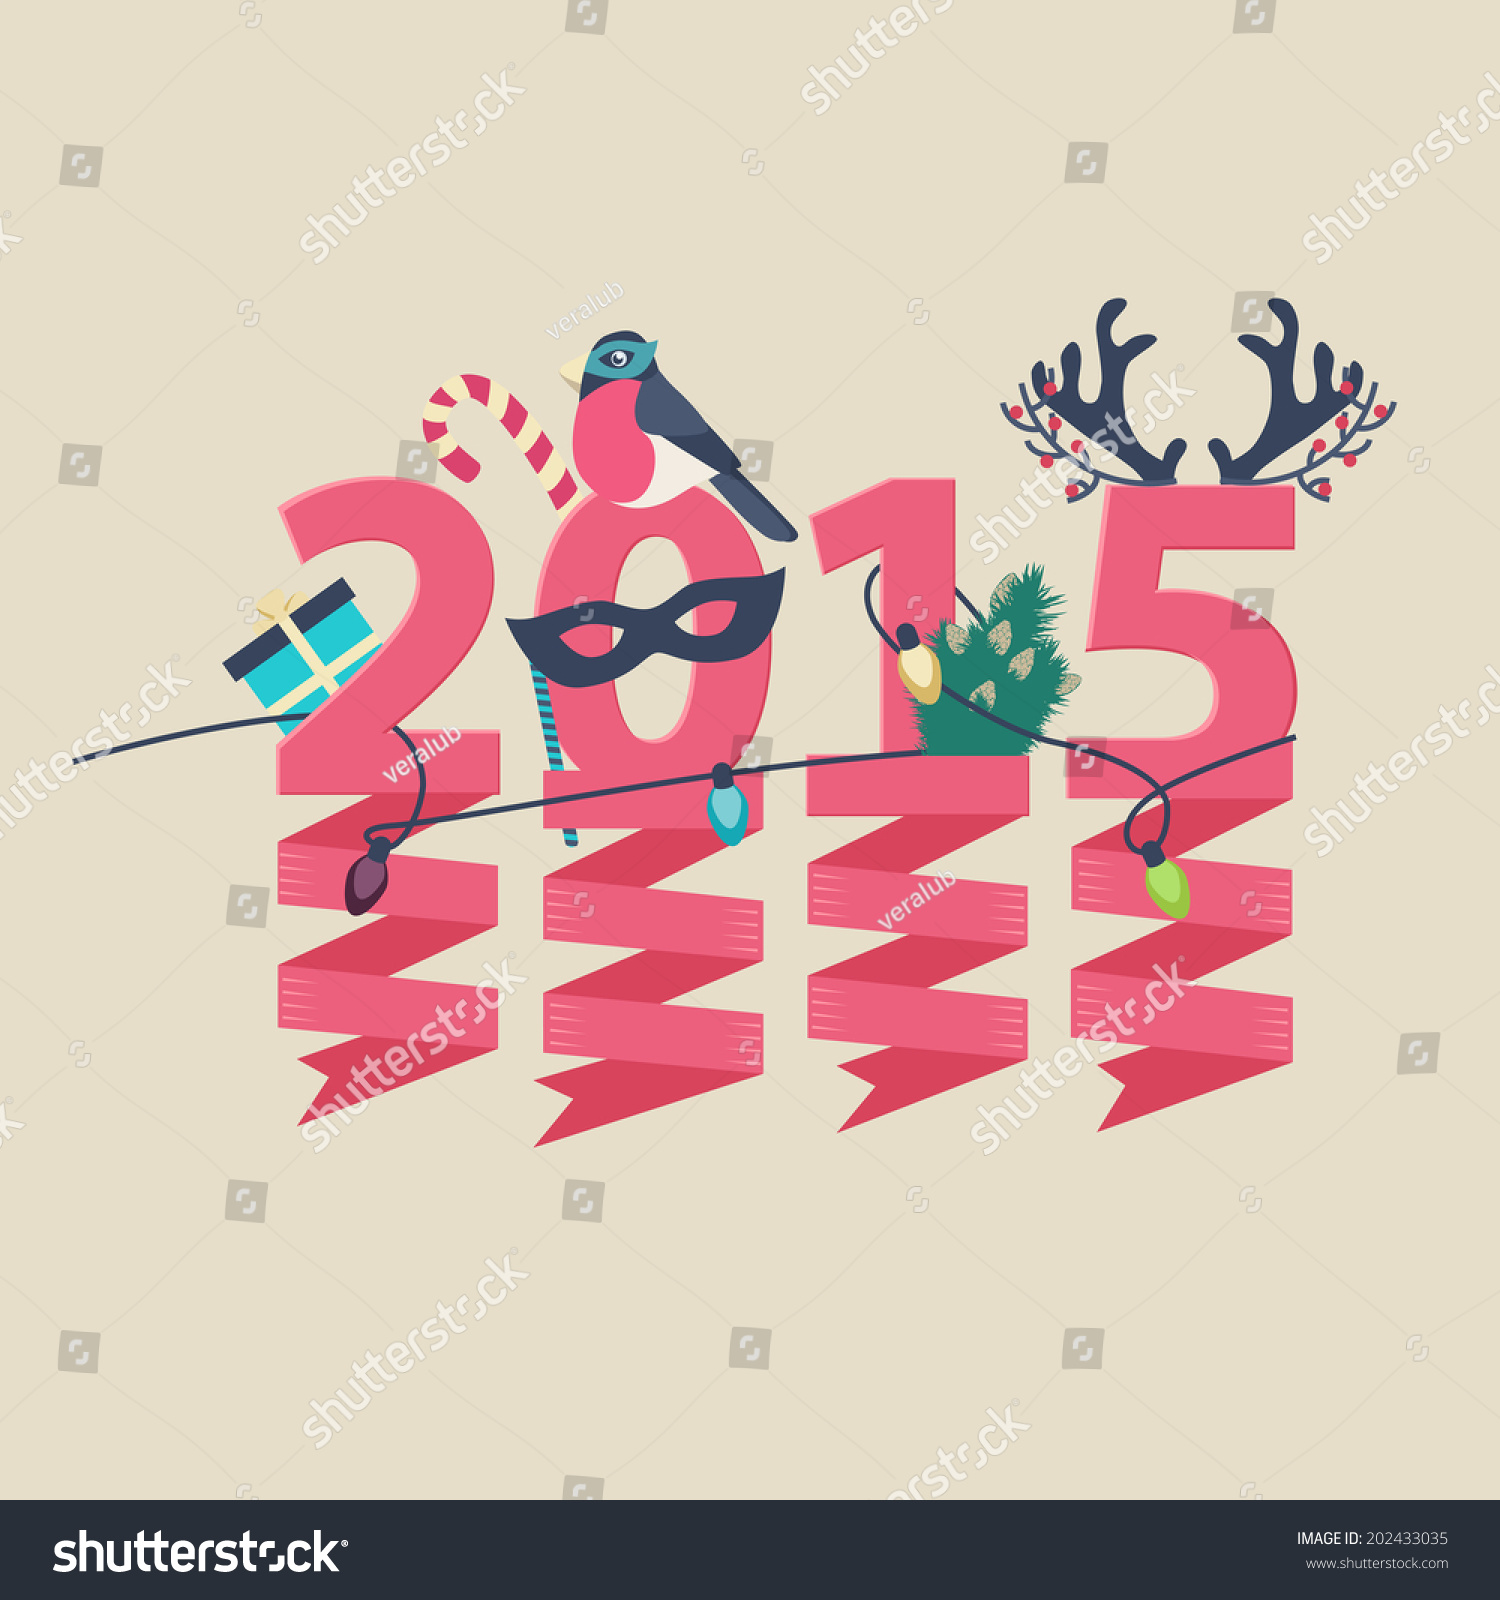 2015 new year greeting card design stock vector royalty free 2015 new year greeting card design with party streamers hanging from pink numerals decorated with christmas m4hsunfo